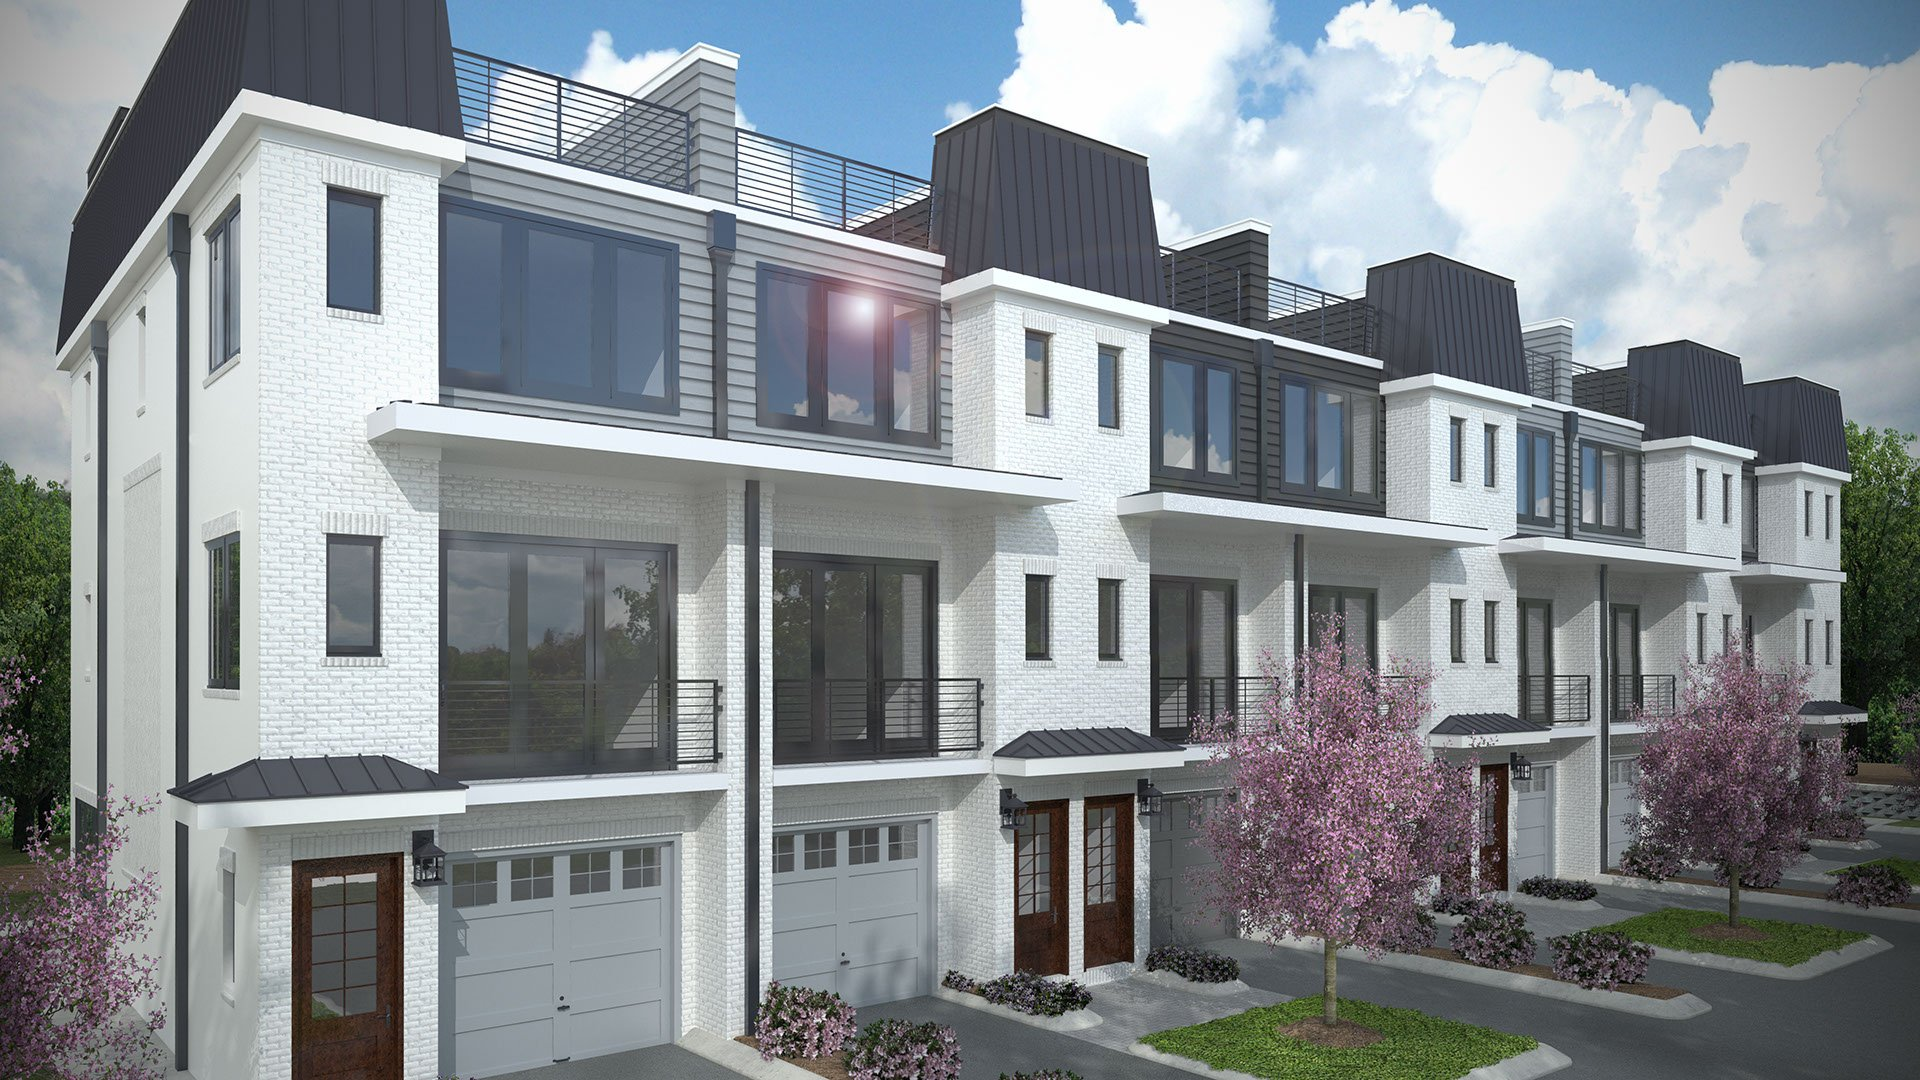 a 3d rendering of white brick modern town homes for real estate marketing purposes